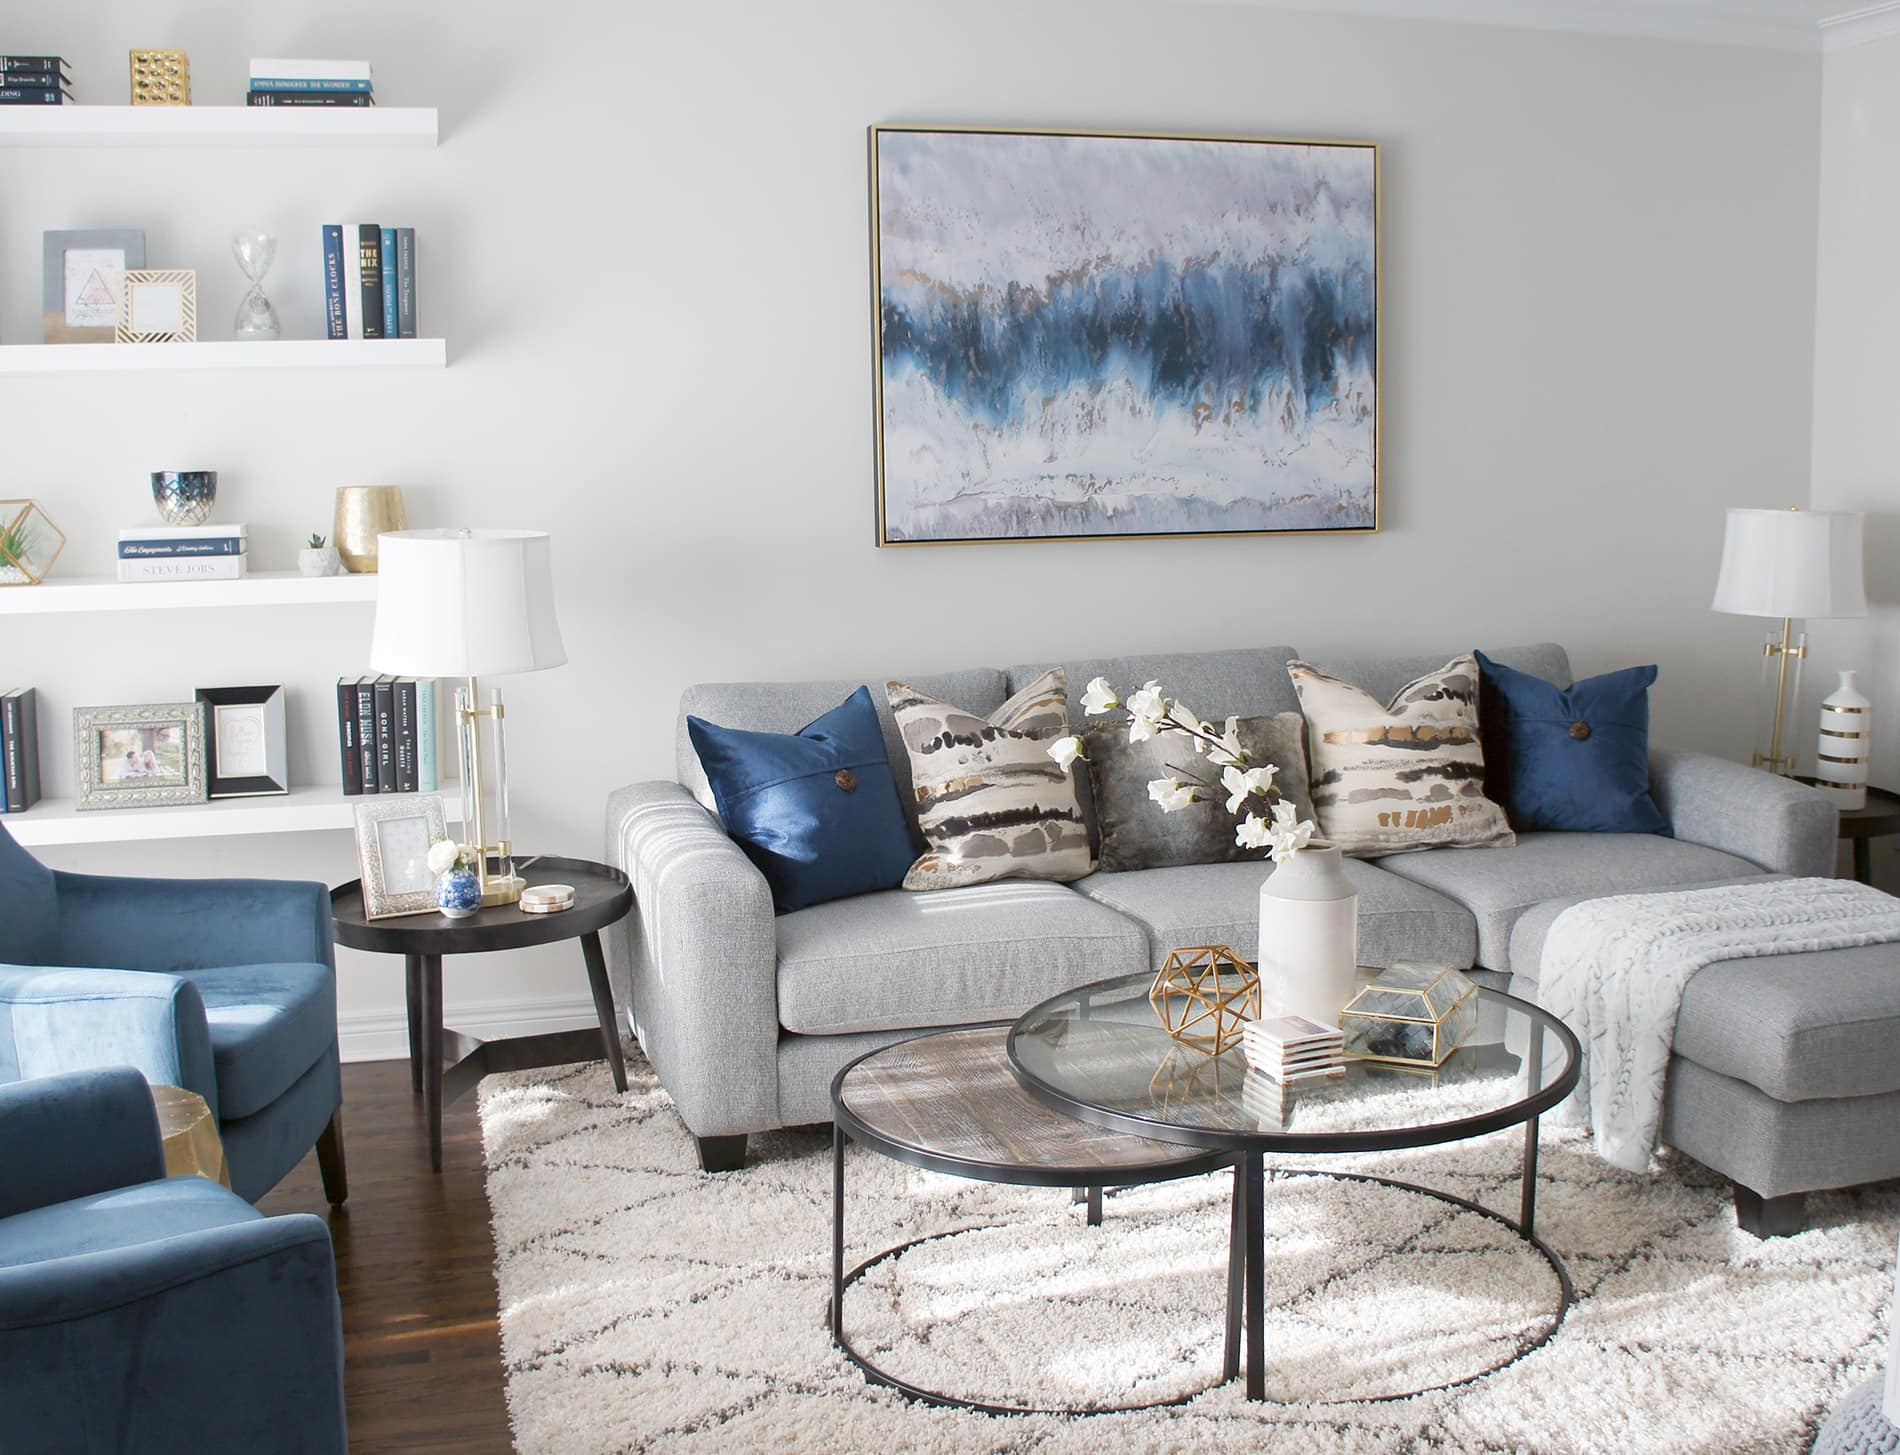 This client is a fan of colour, so we built up rich blue tones through the artwork, pillows and accessories in this living room